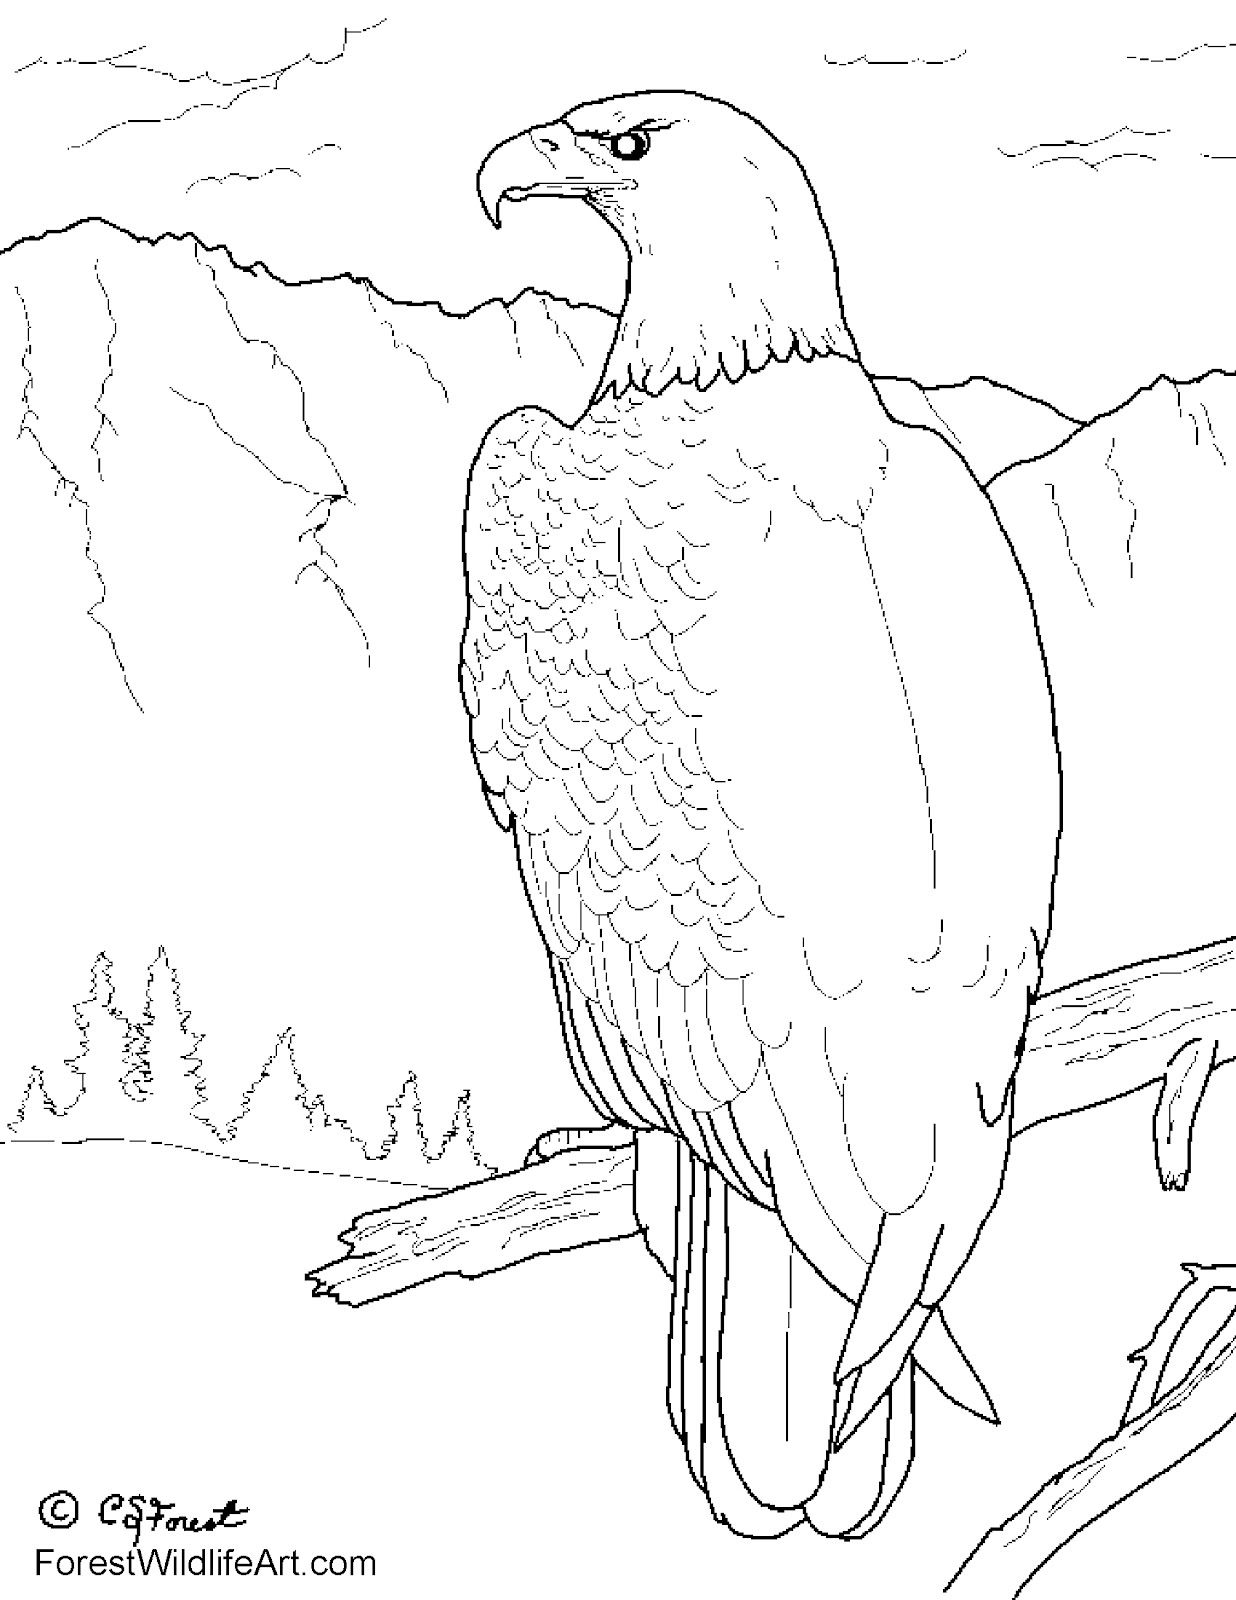 wild animal coloring pages printable - Free animal coloring pages! Color, Cut and Create